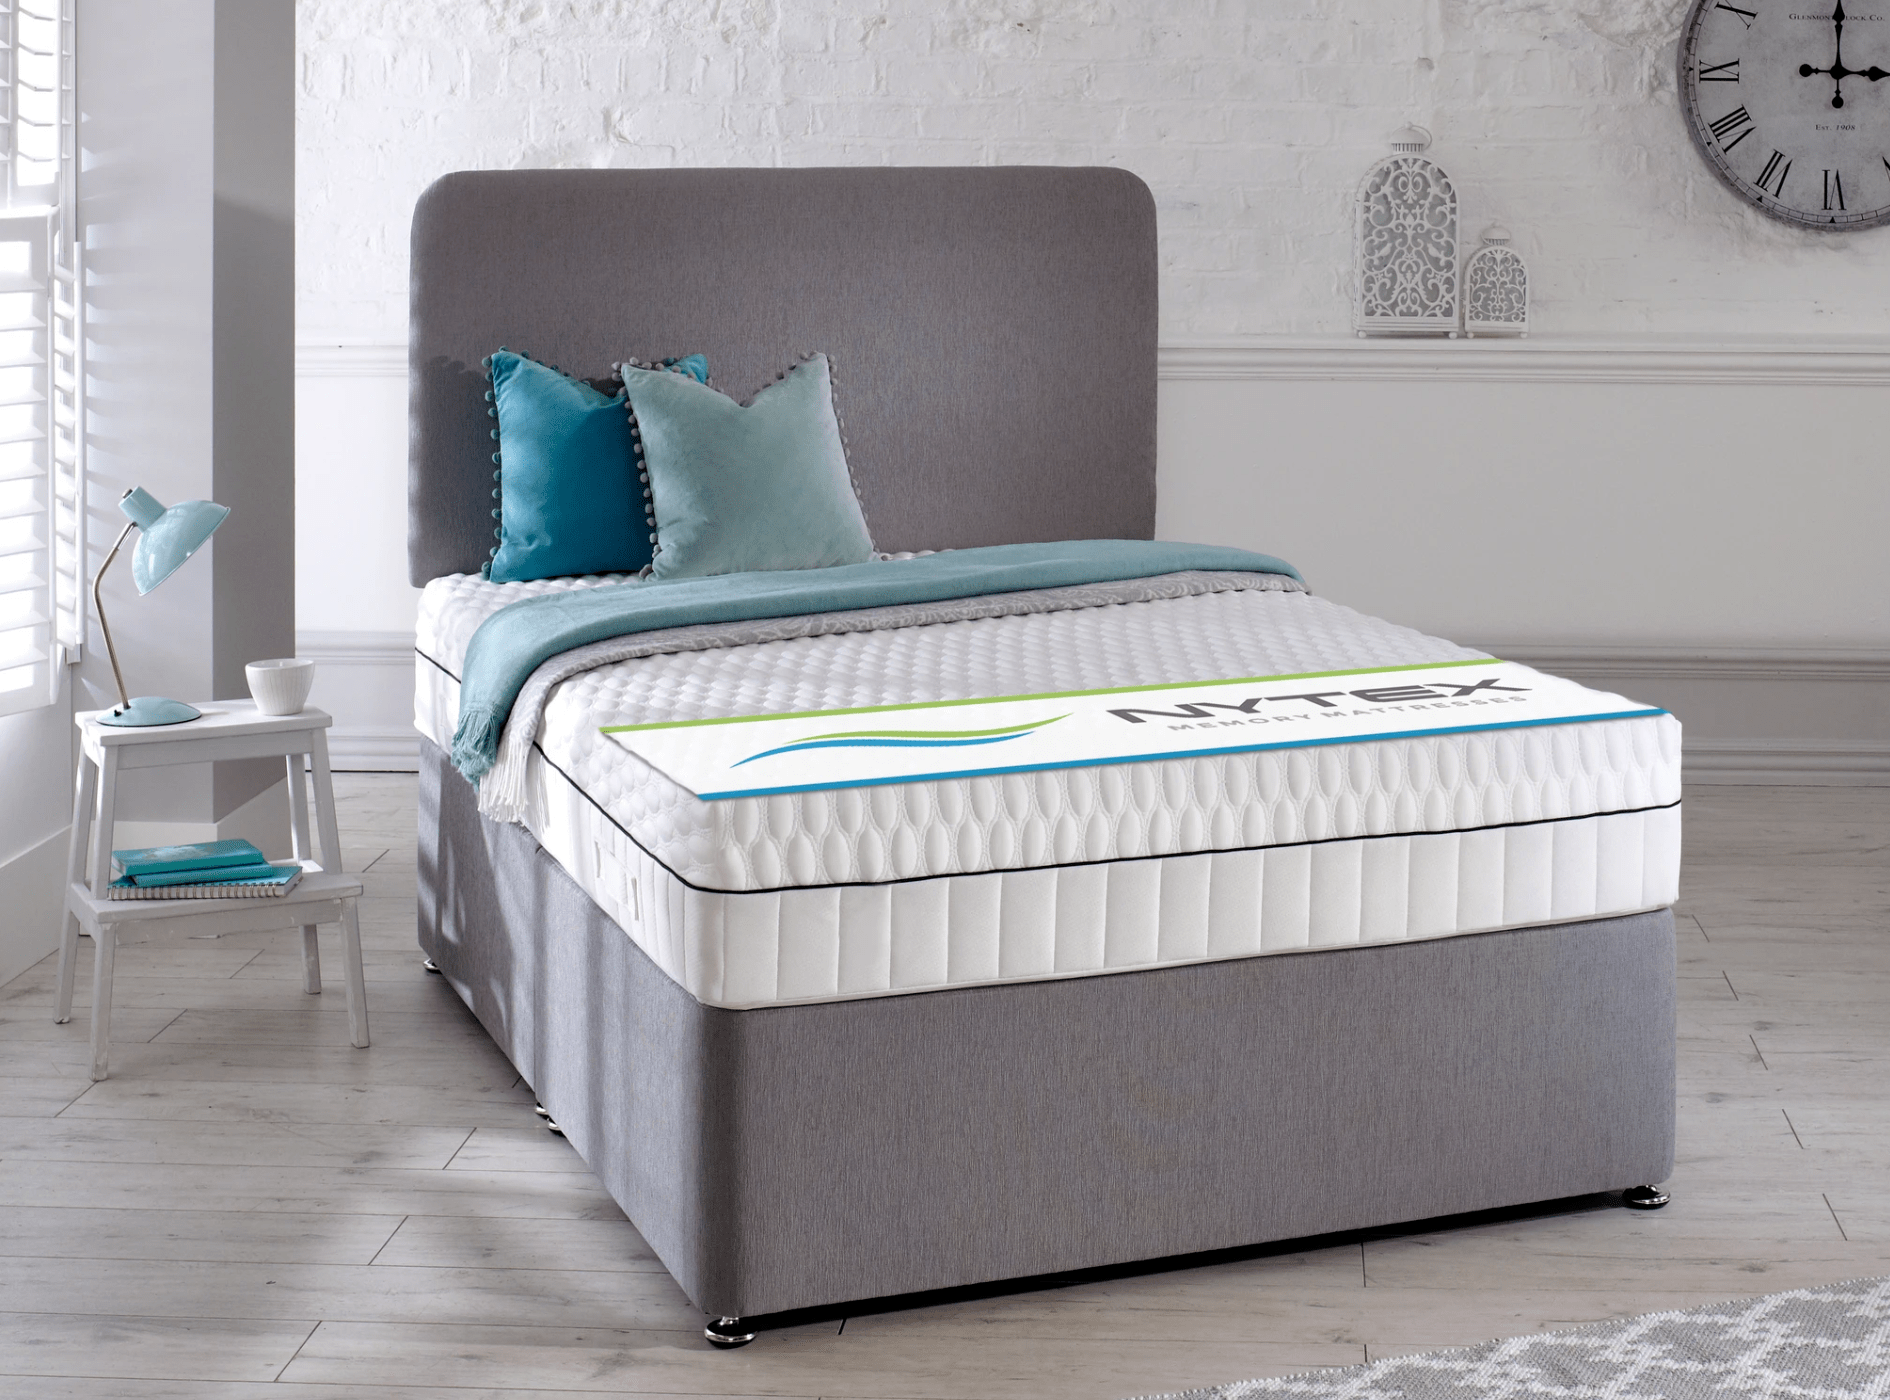 NYTEX LAZARUS NEXT GENERATION 7 ZONE MEMORY FOAM MATTRESS